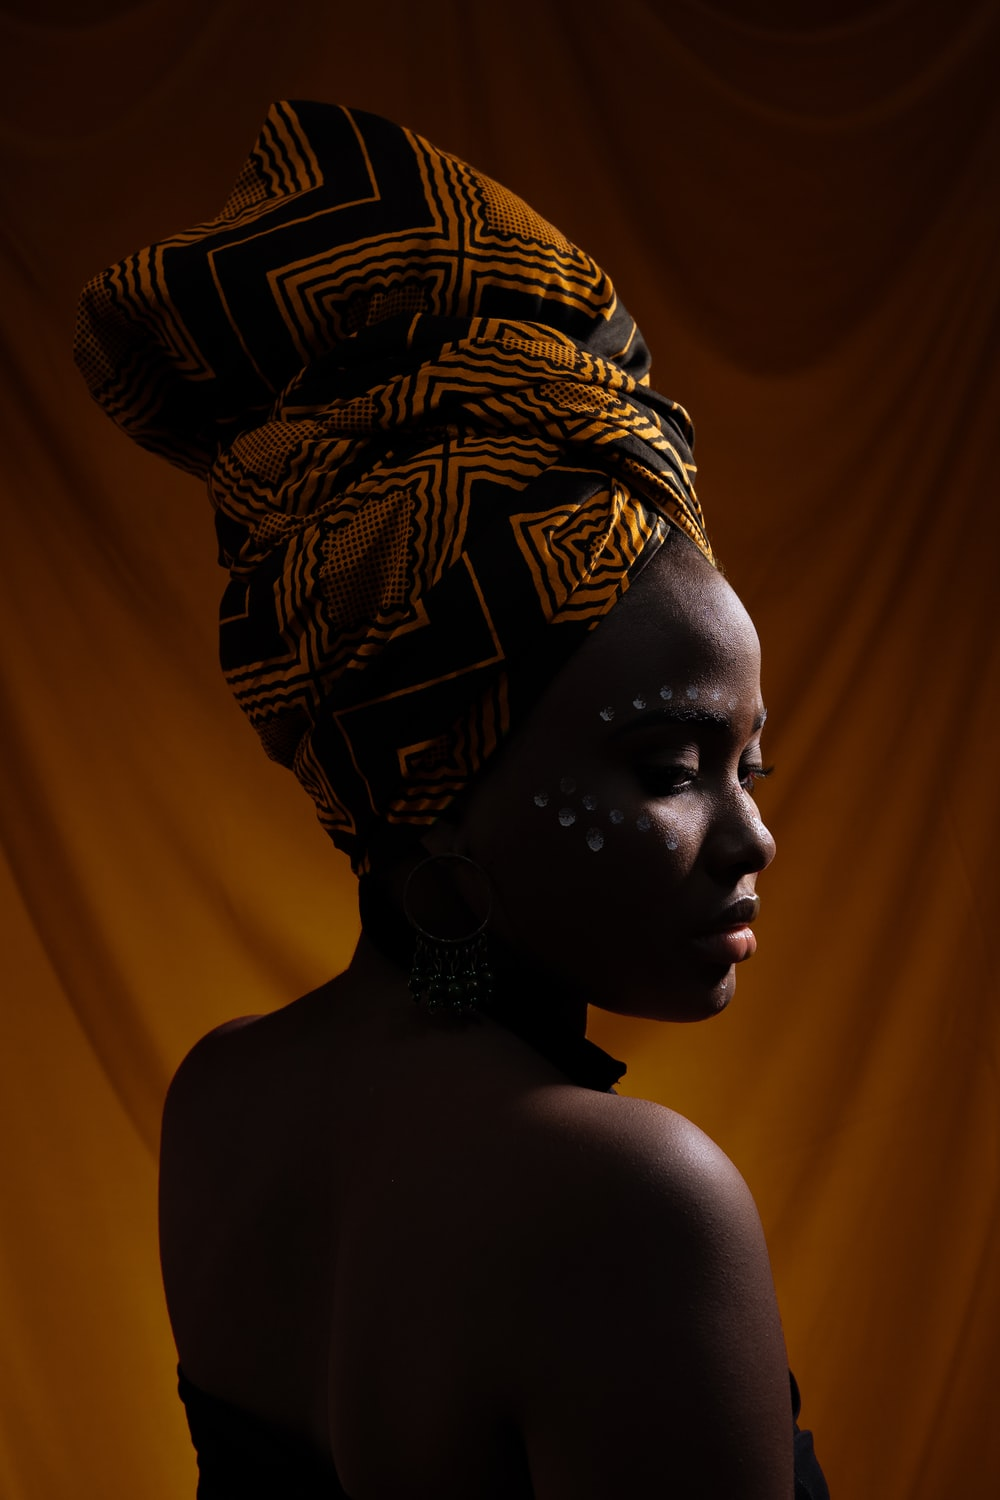 woman with black and orange turban standing and glancing her right side